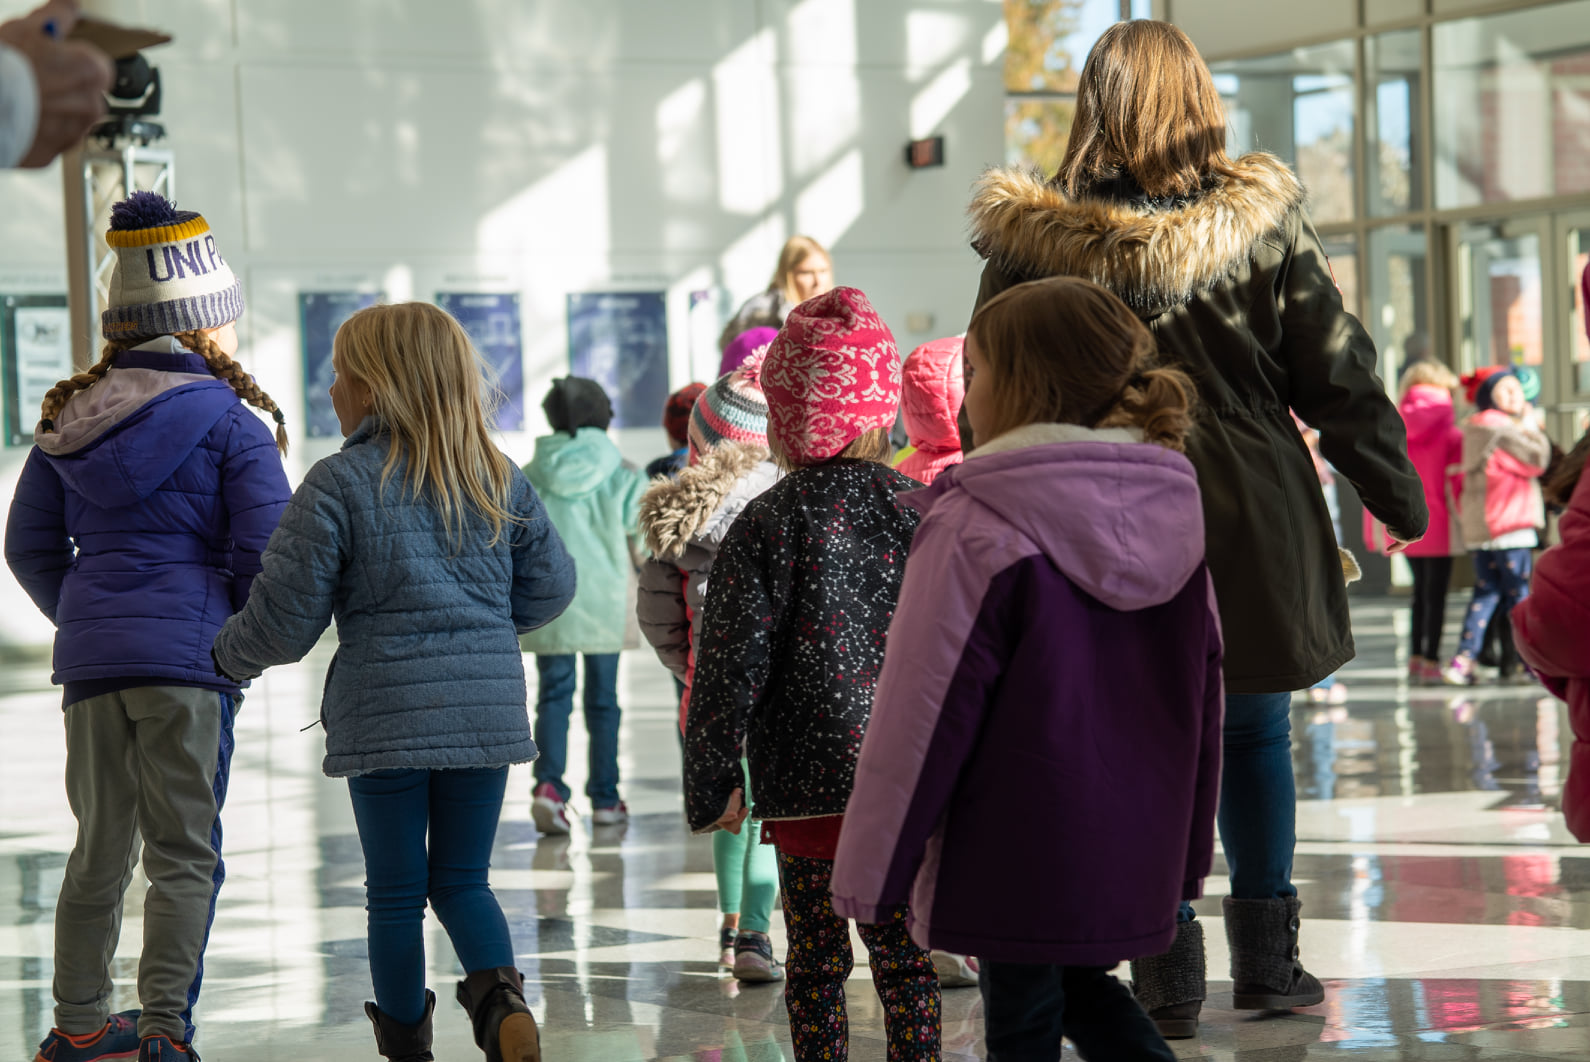 Children filing through the lobby of the Gallagher Bluedorn in winter clothes.